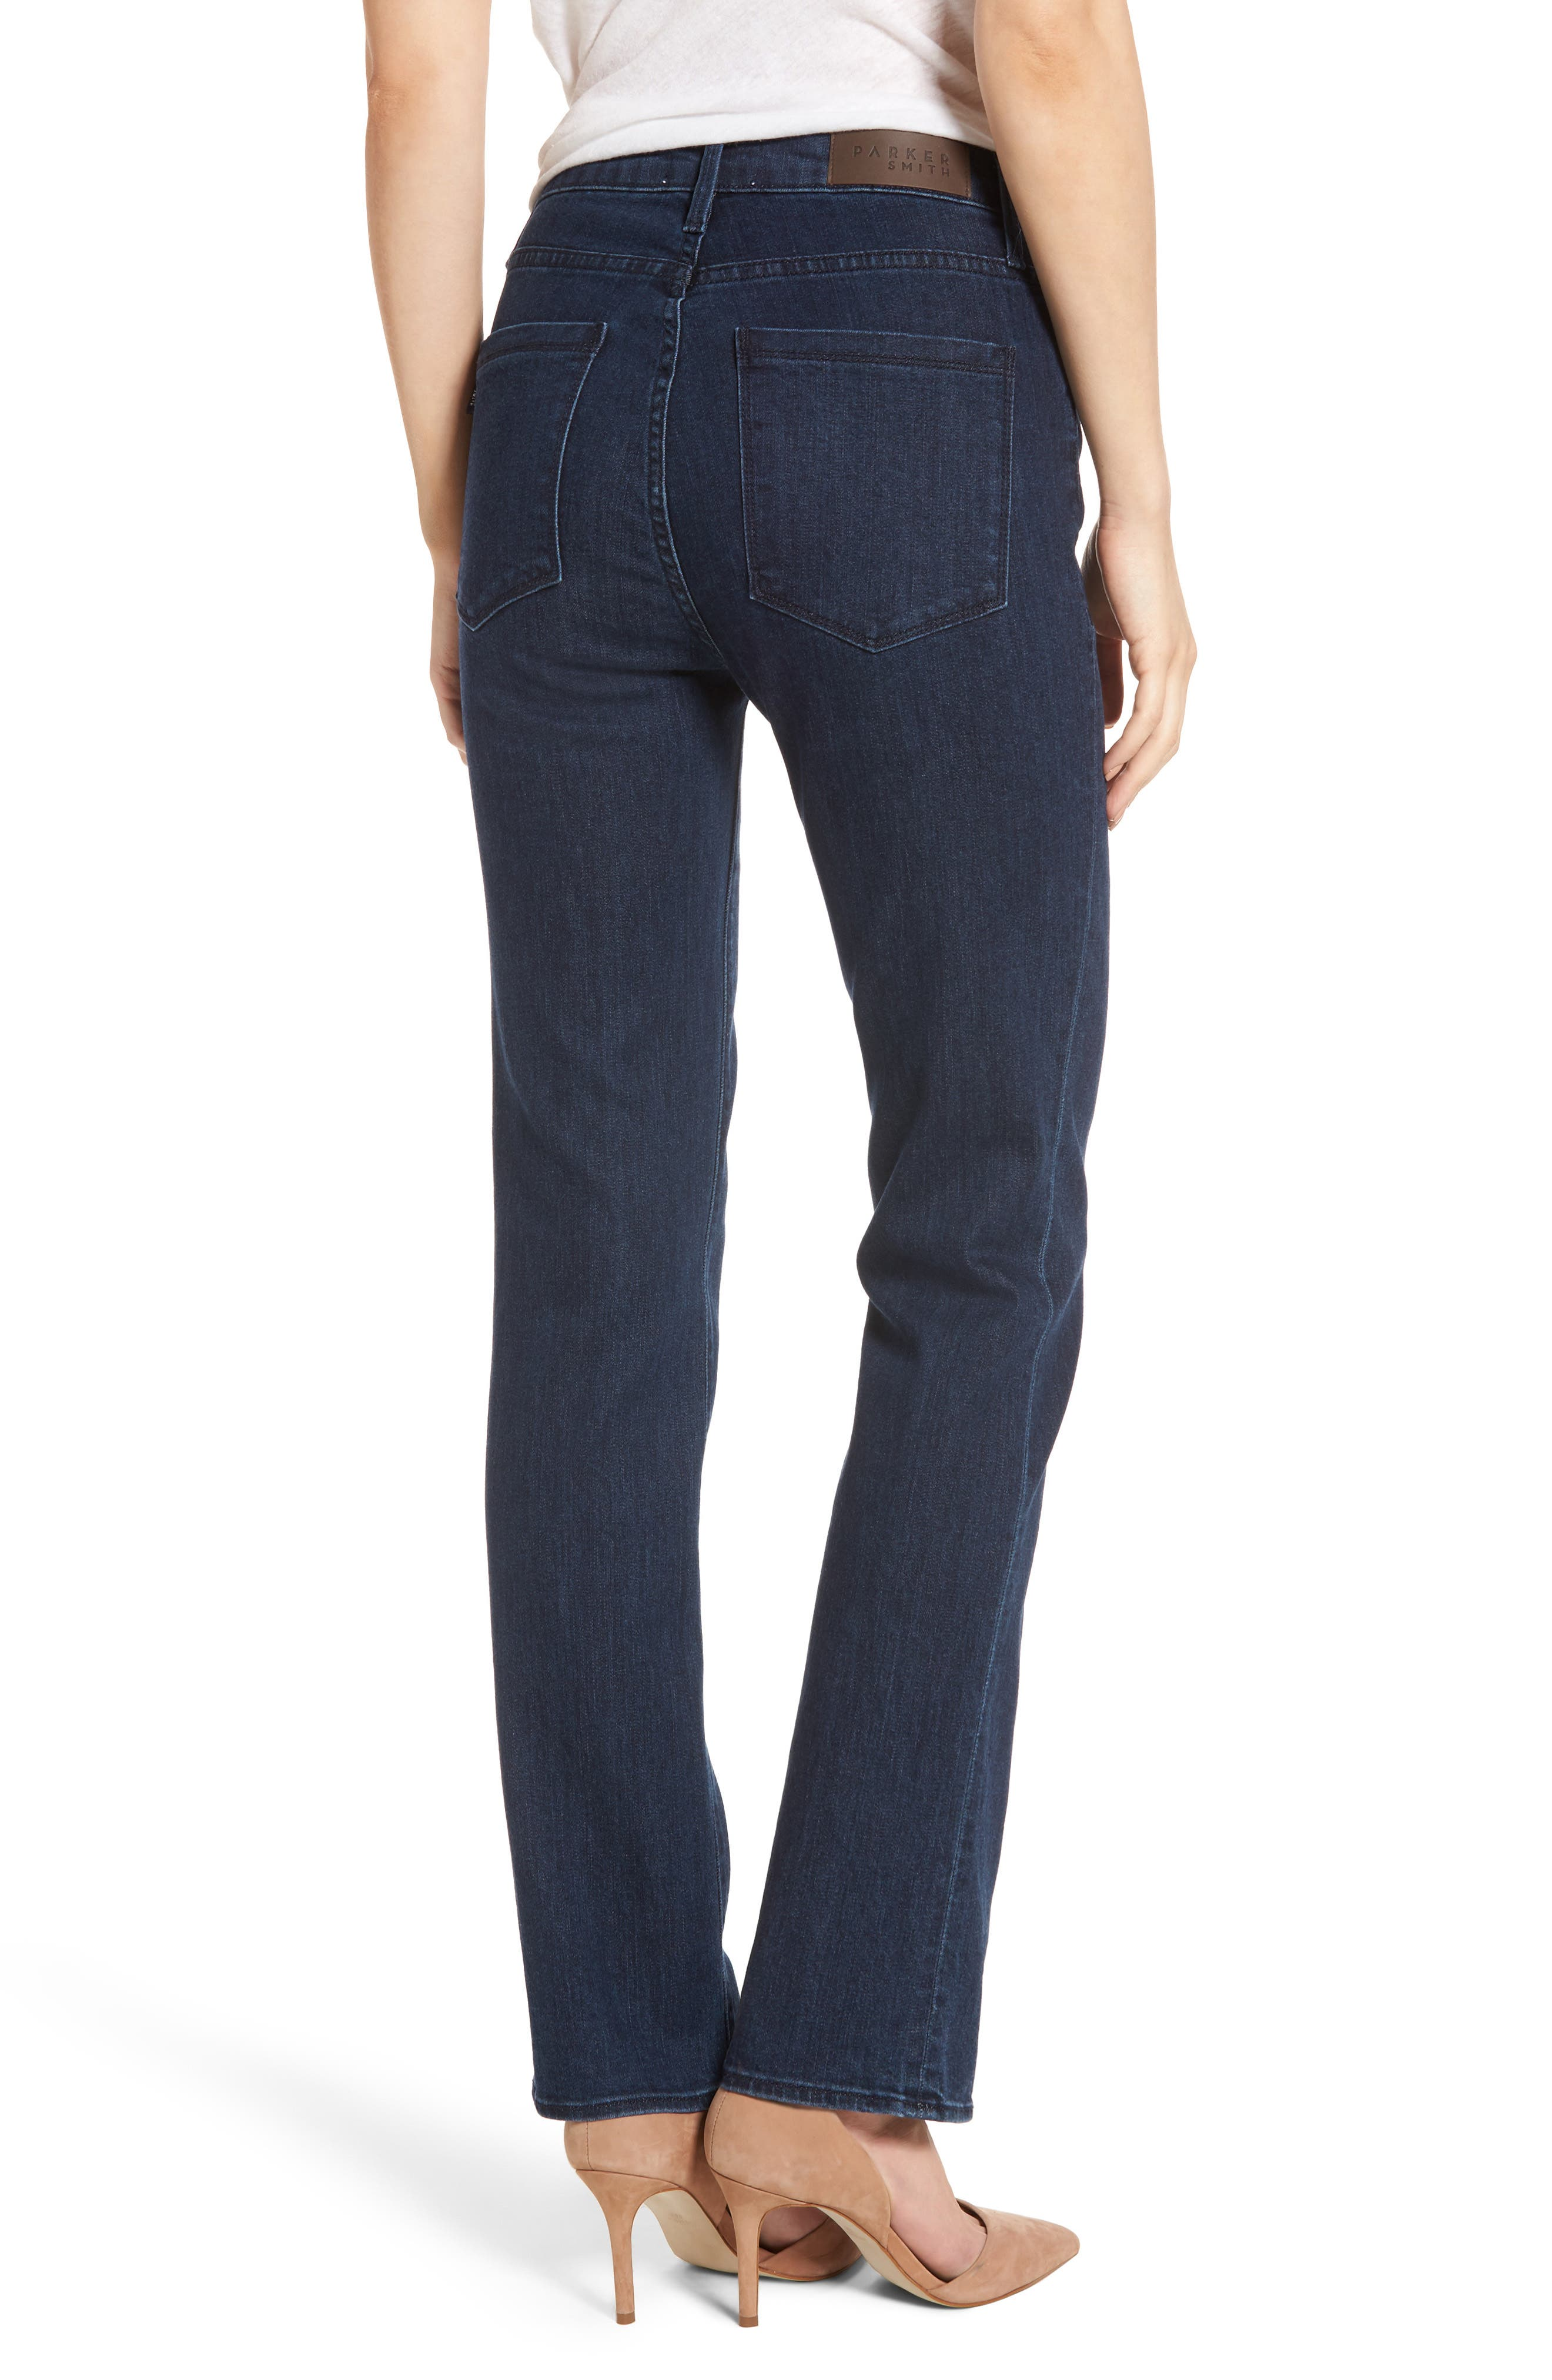 Bombshell Runaround Straight Leg Jeans,                             Alternate thumbnail 2, color,                             405